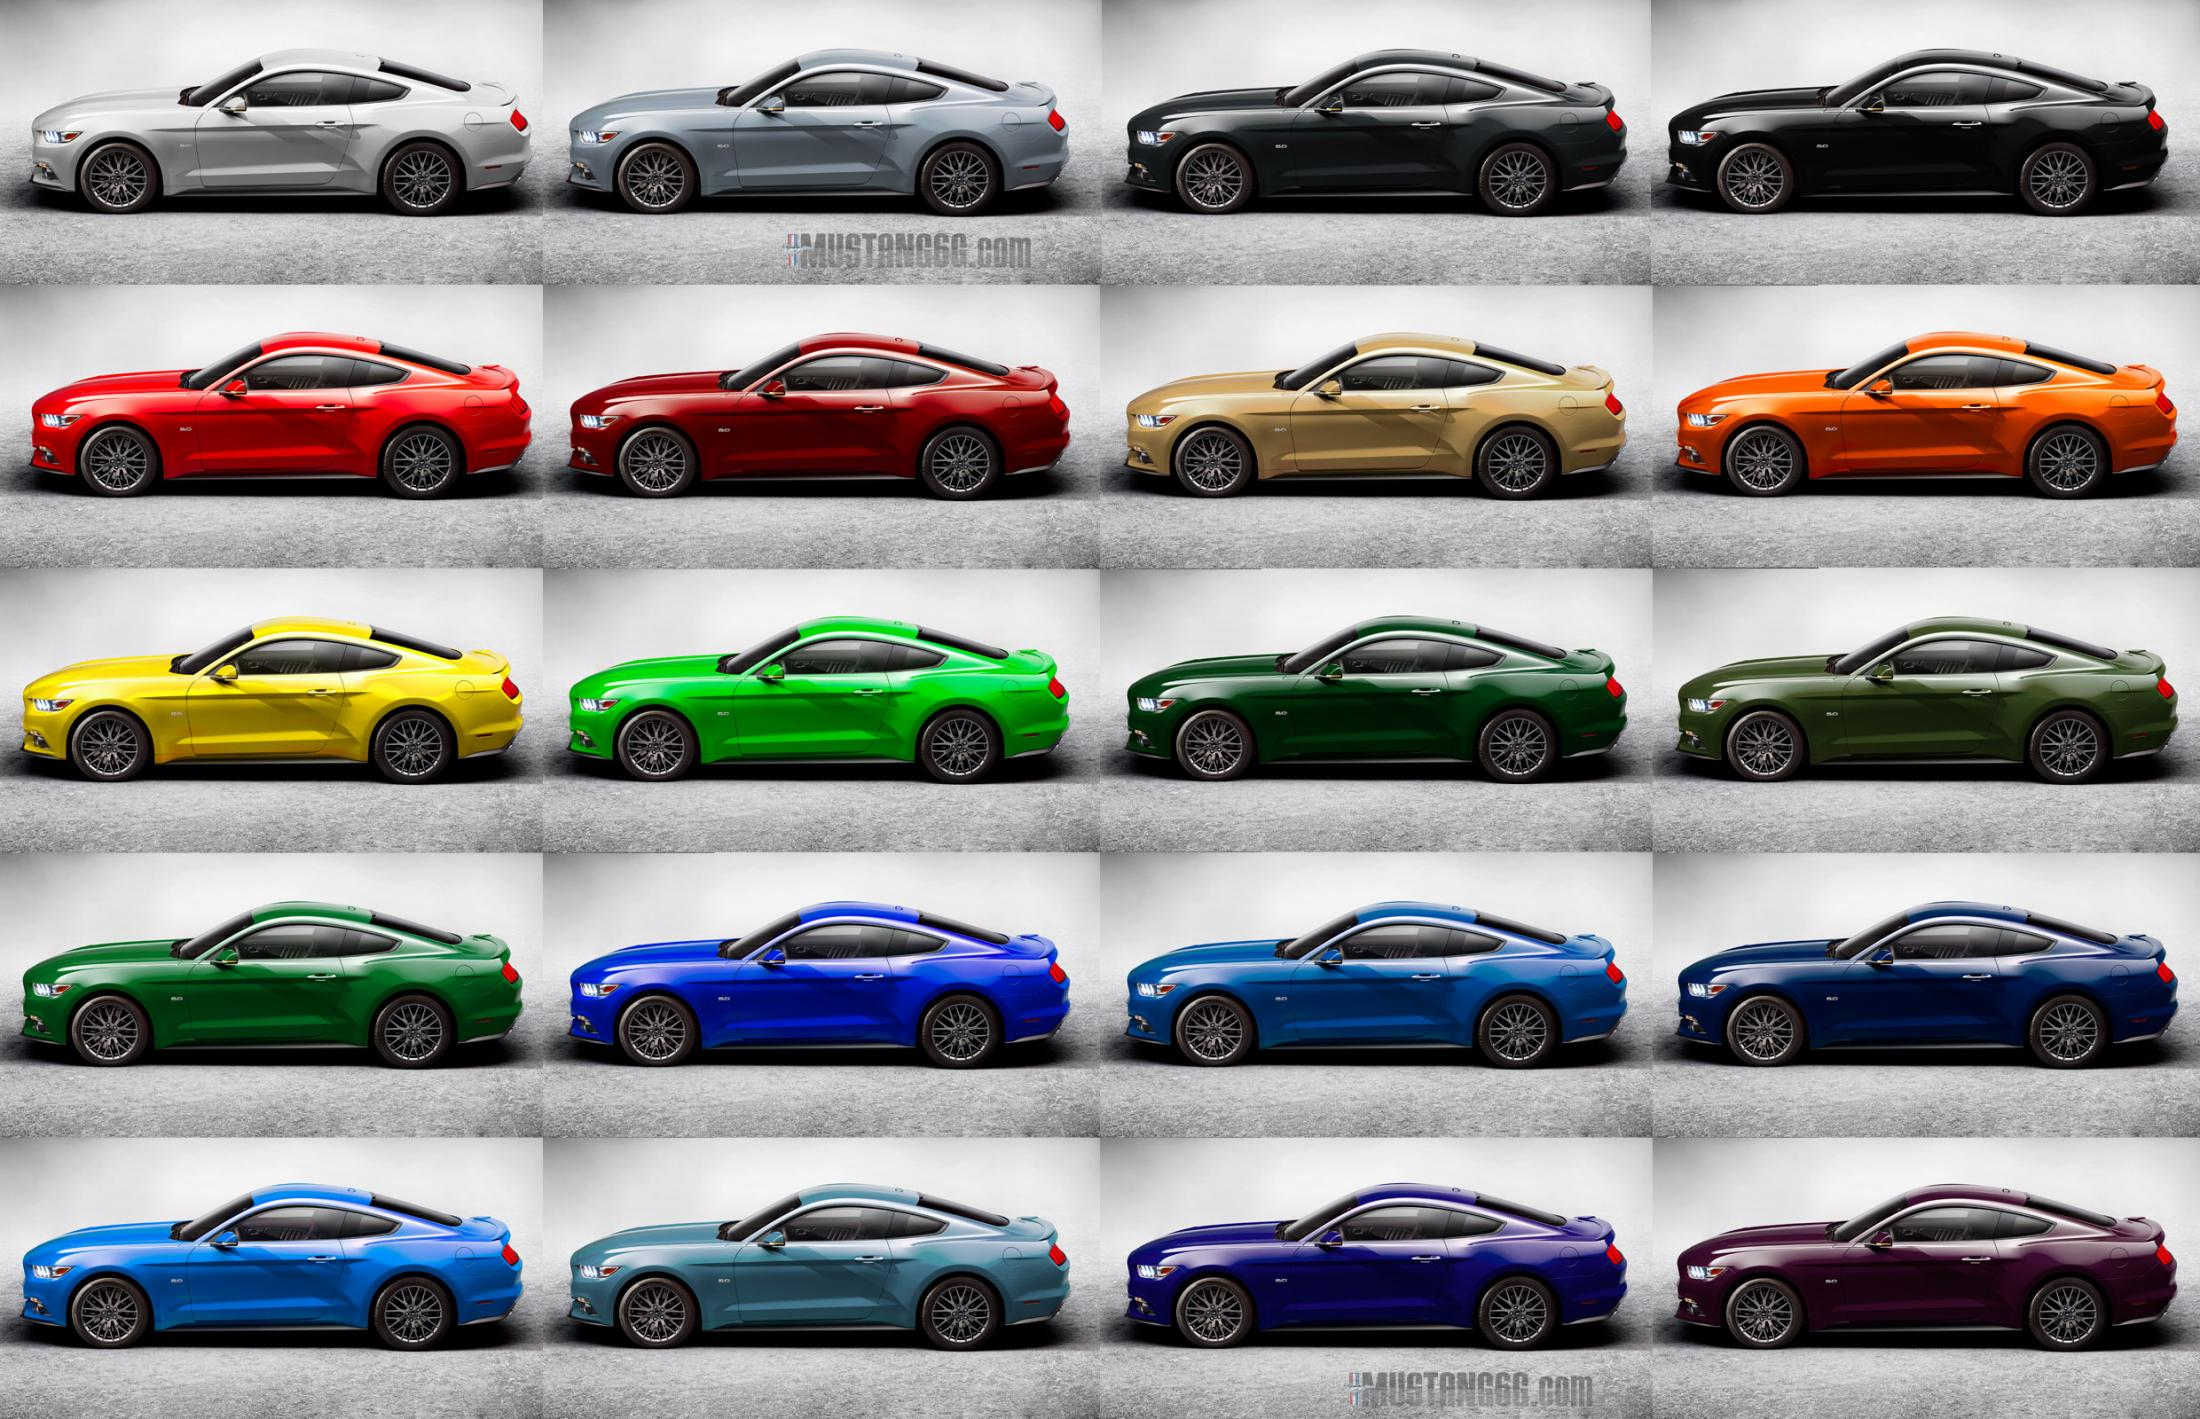 2015 Mustang Colors >> 2015 Mustang Introduction 12 5 2013 Page 5